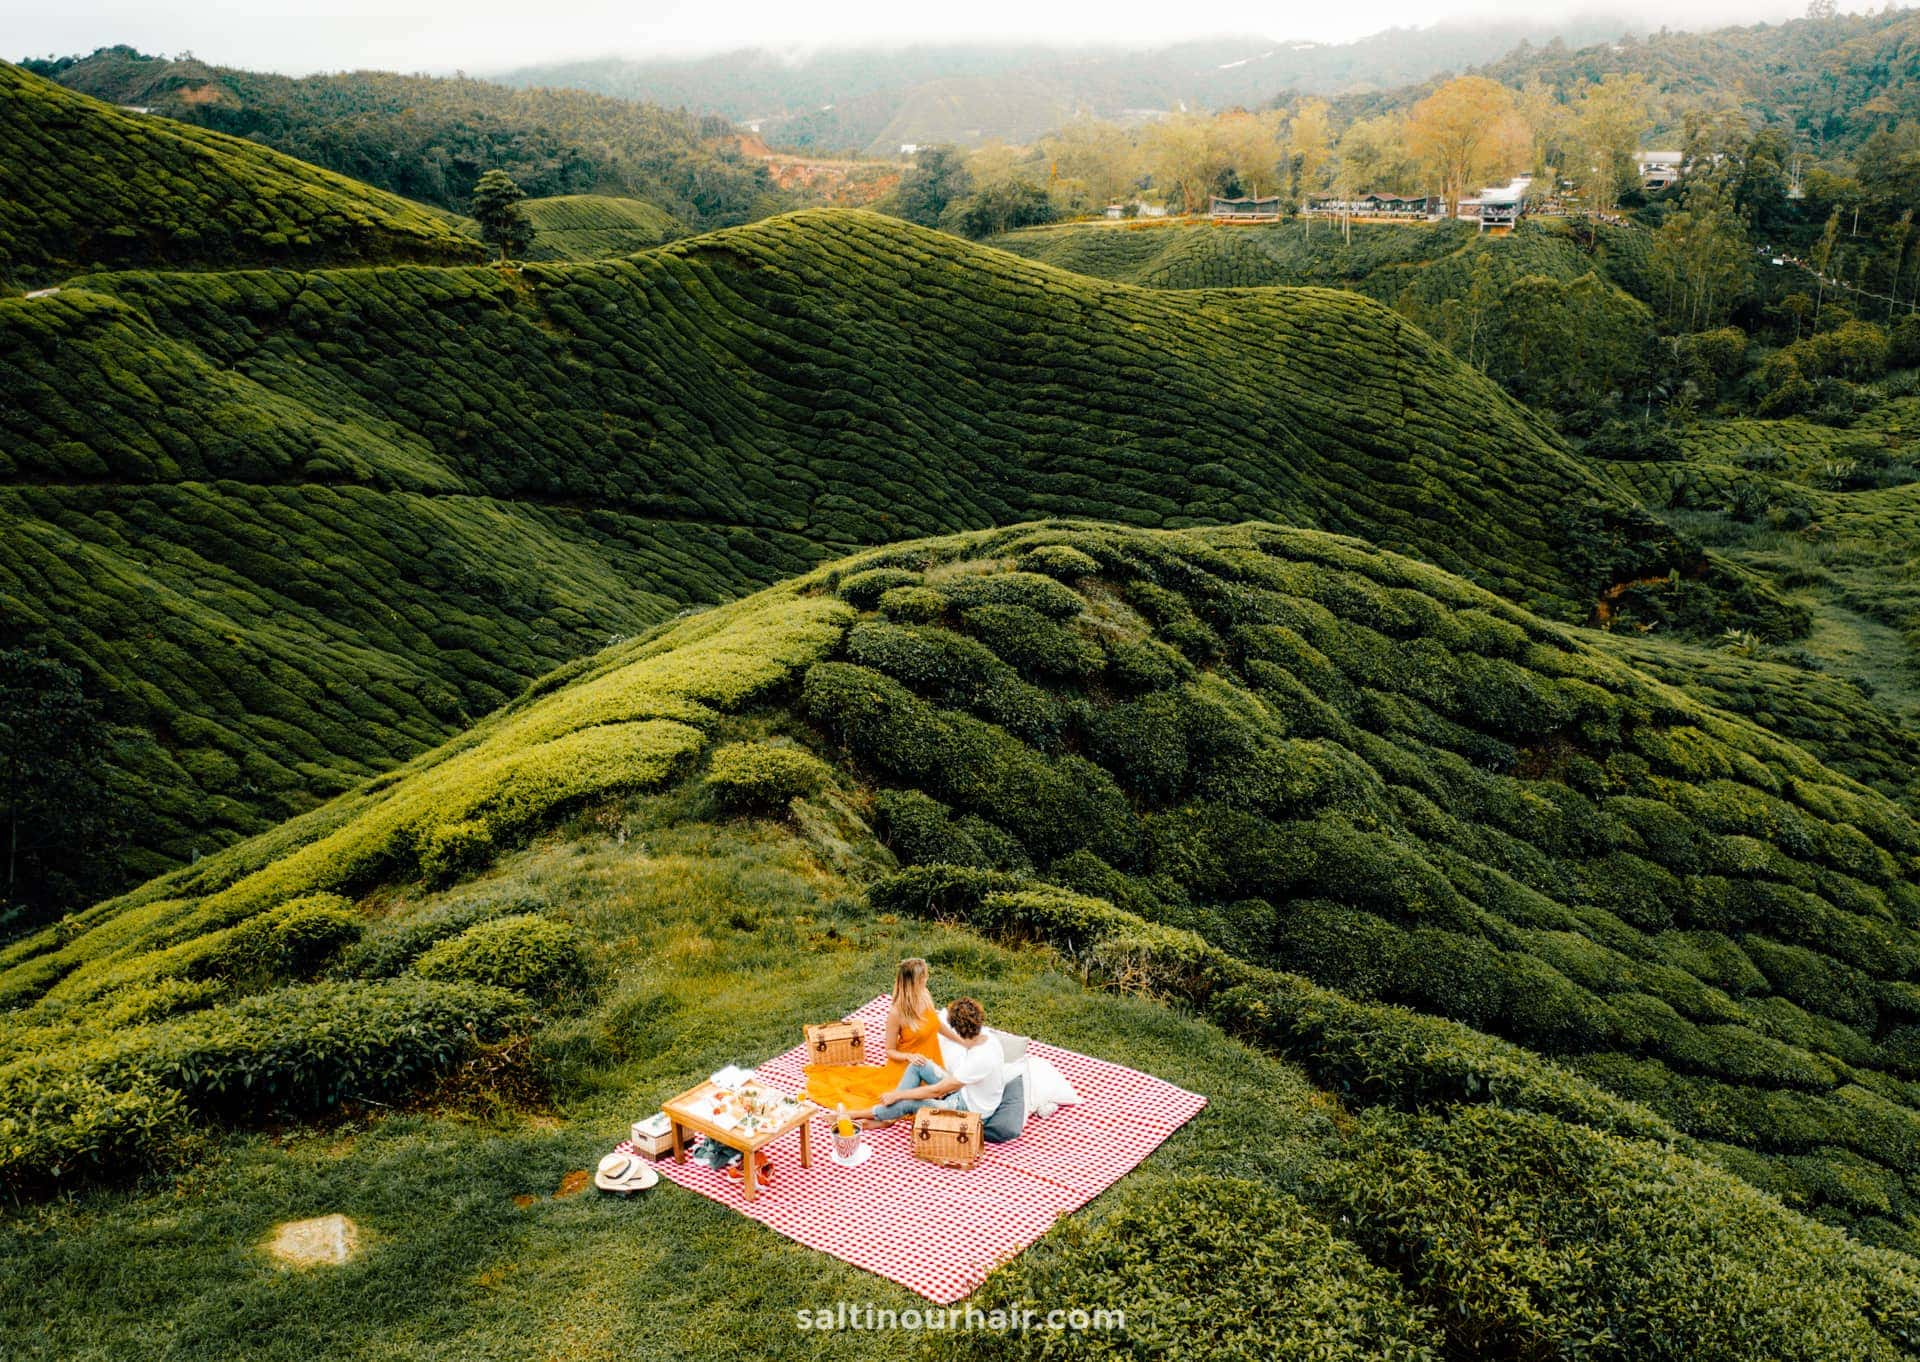 cameron highlands resort tea plantations picnic